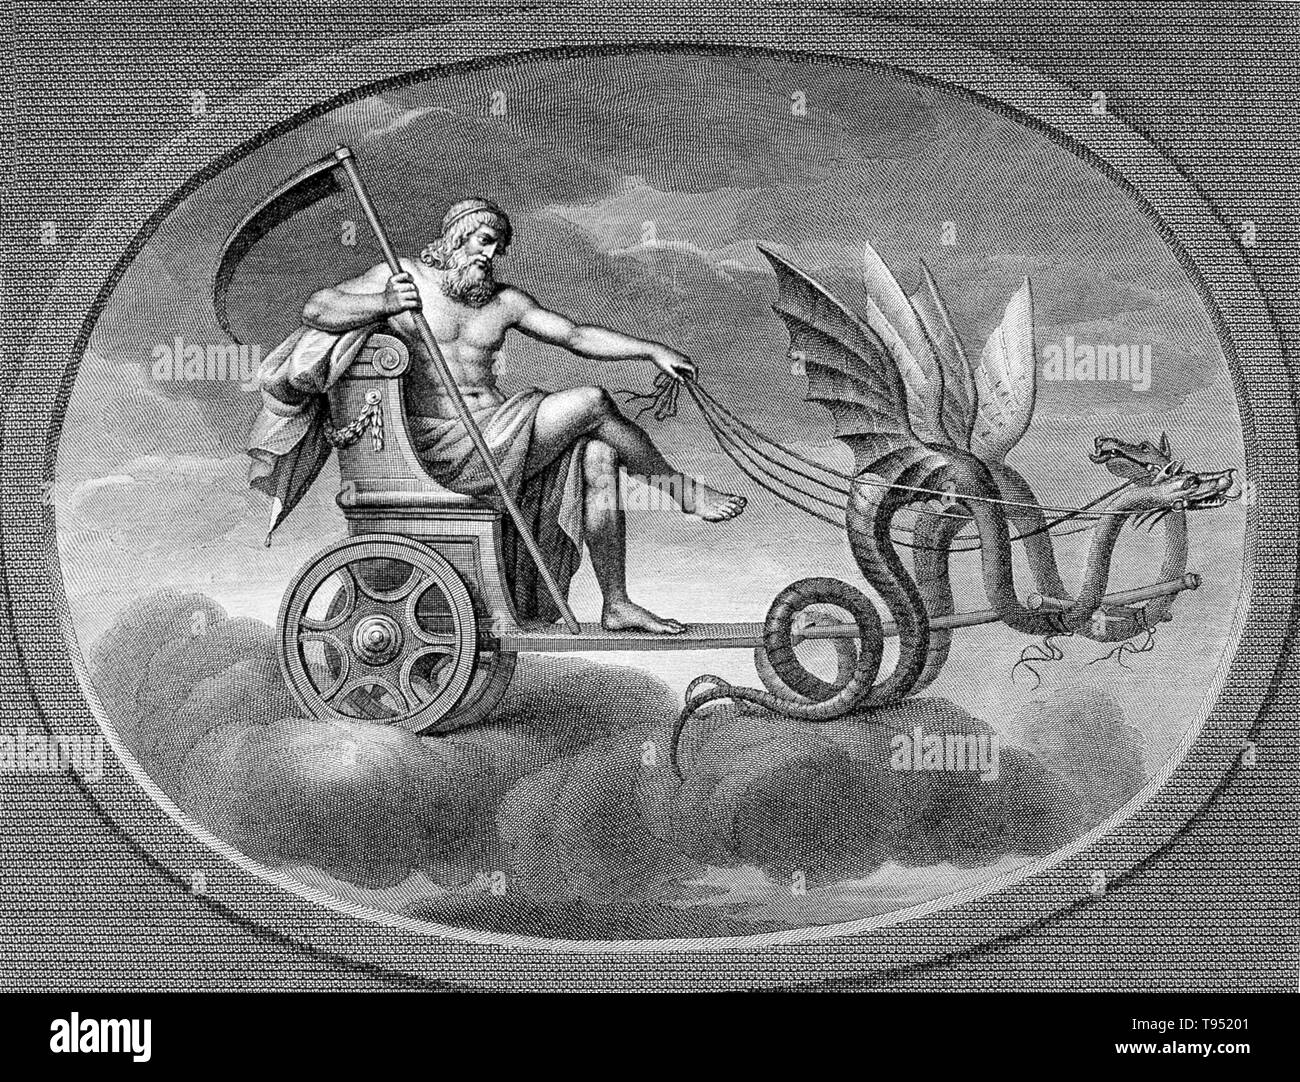 Saturn with his scythe, riding in his chariot. Saturn was a god in ancient Roman religion and a character in myth. He was the first god of the Capitol, known since the most ancient times as Saturnius Mons, and was seen as a god of generation, dissolution, plenty, wealth, agriculture, periodical renewal and liberation. In later developments he came to be also a god of time. His reign was depicted as a Golden Age of plenty and peace. The Temple of Saturn in the Roman Forum housed the state treasury. In December, he was celebrated at what is perhaps the most famous of the Roman festivals, the Sat - Stock Image